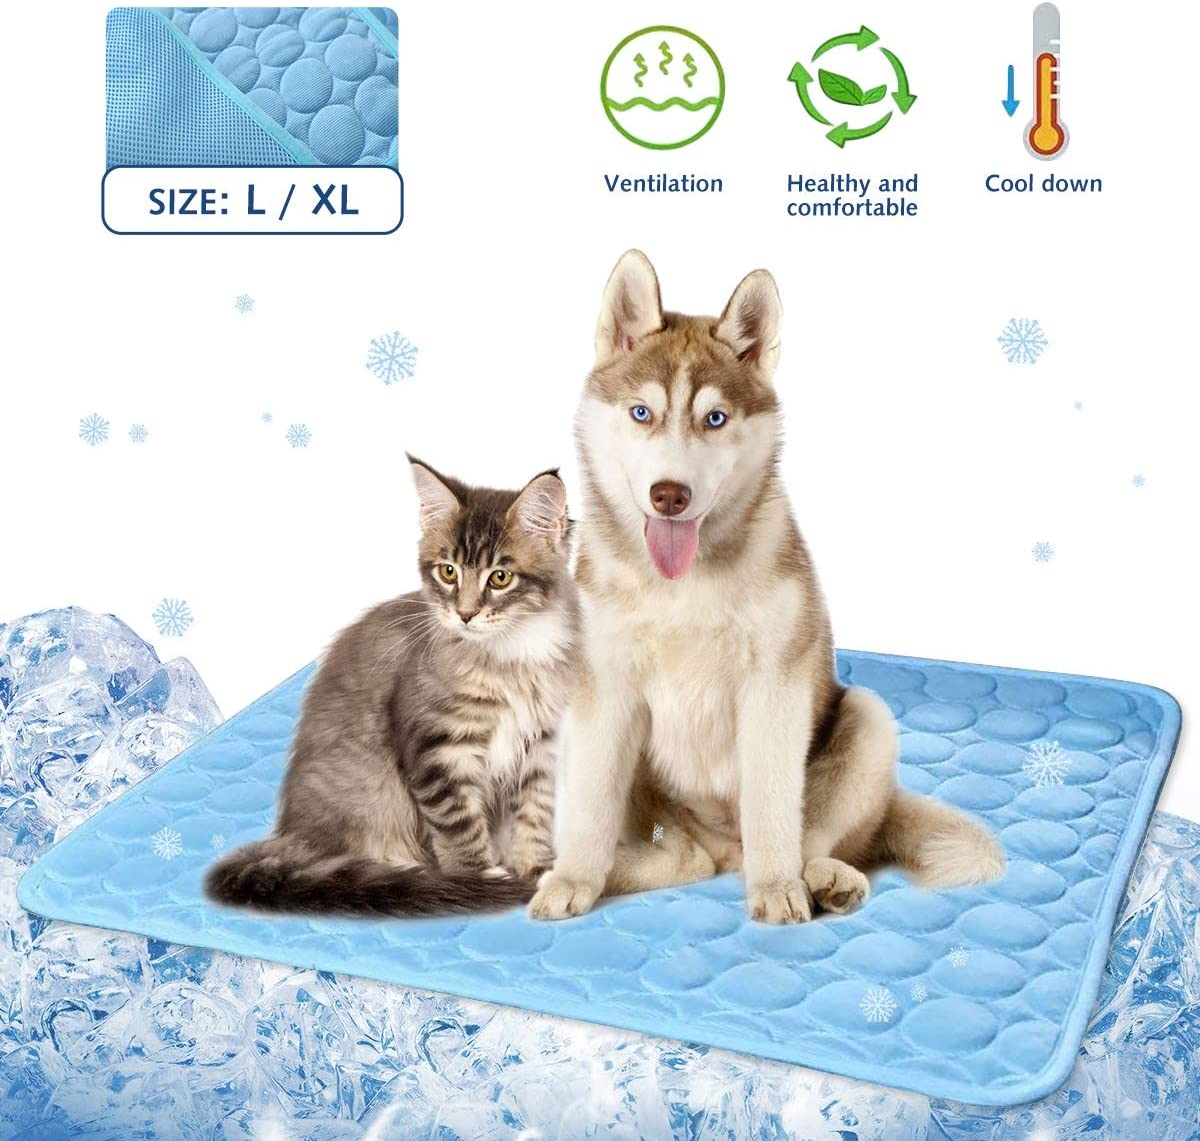 Wironlst Summer Pet Self Cooling Mat - Dogs Cats Washable Ice Silk Cooling Mat, Breathable Pet Crate Cushion Sleep Pad for Dogs Kennel Sofa Bed Floor